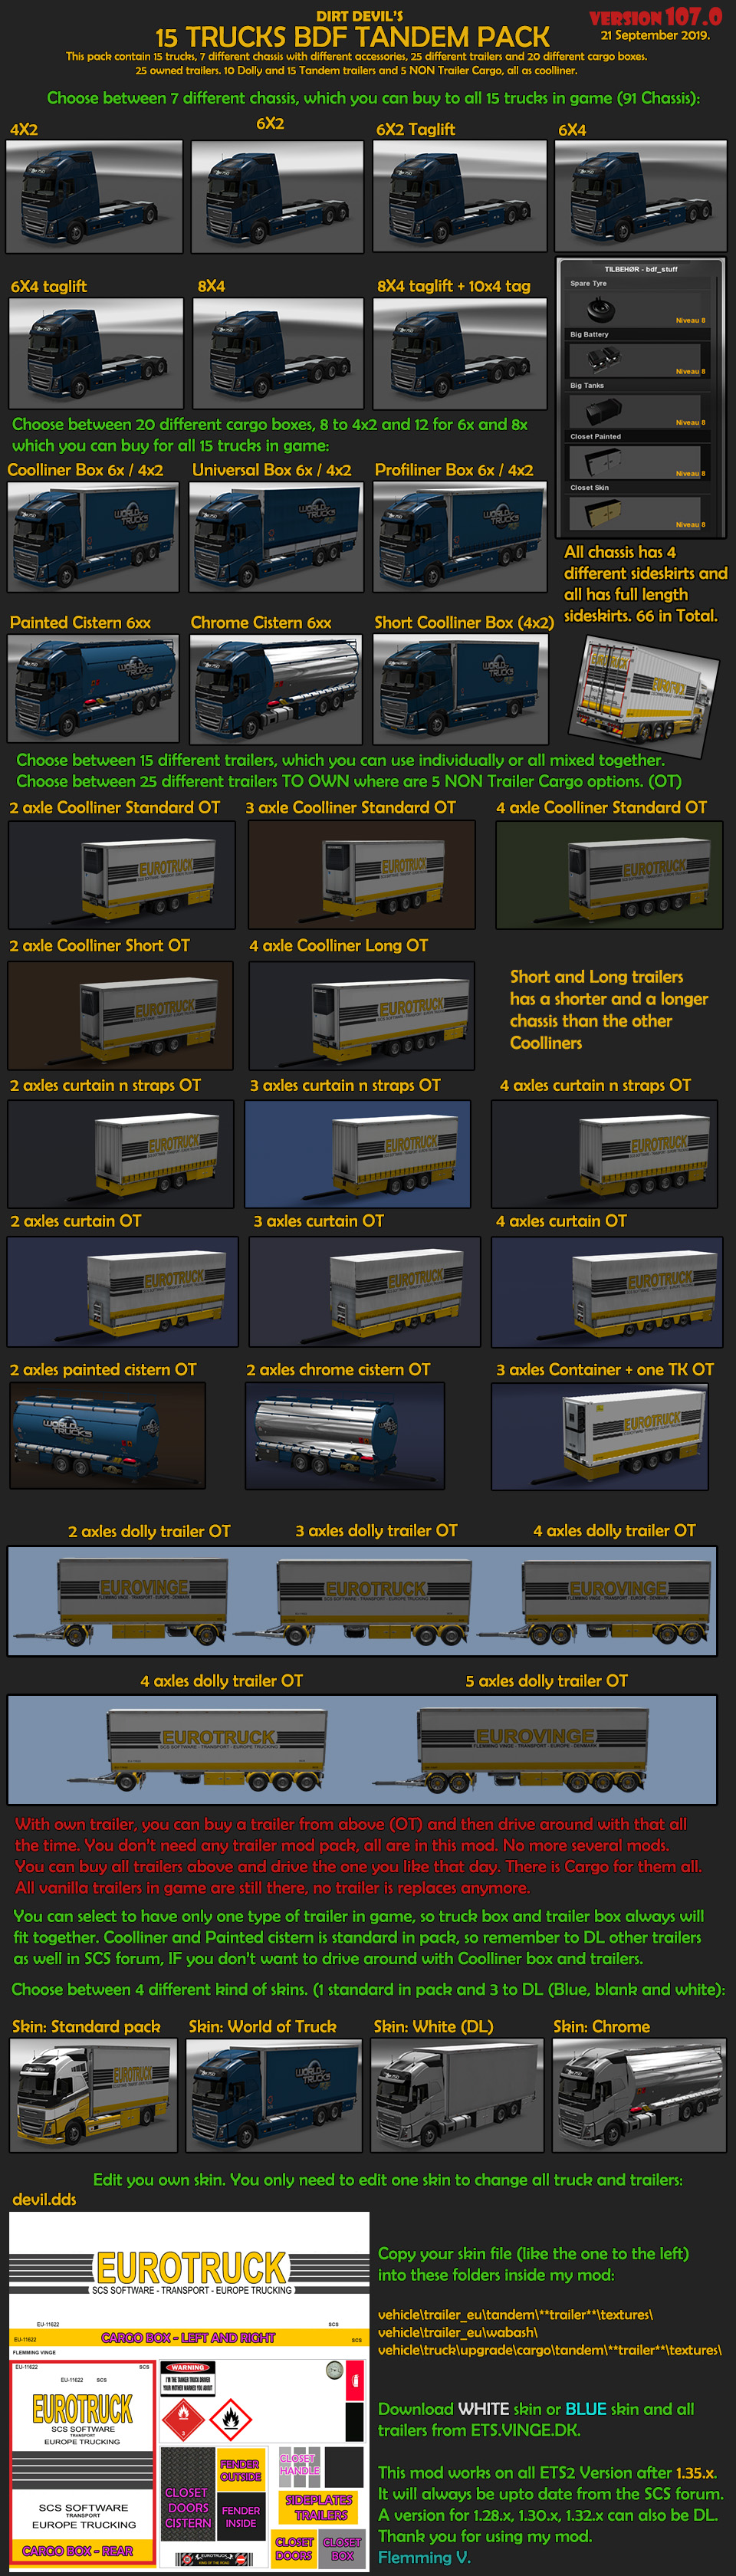 BDF Tandem Truck Pack v106 0 (29-June-19) - SCS Software